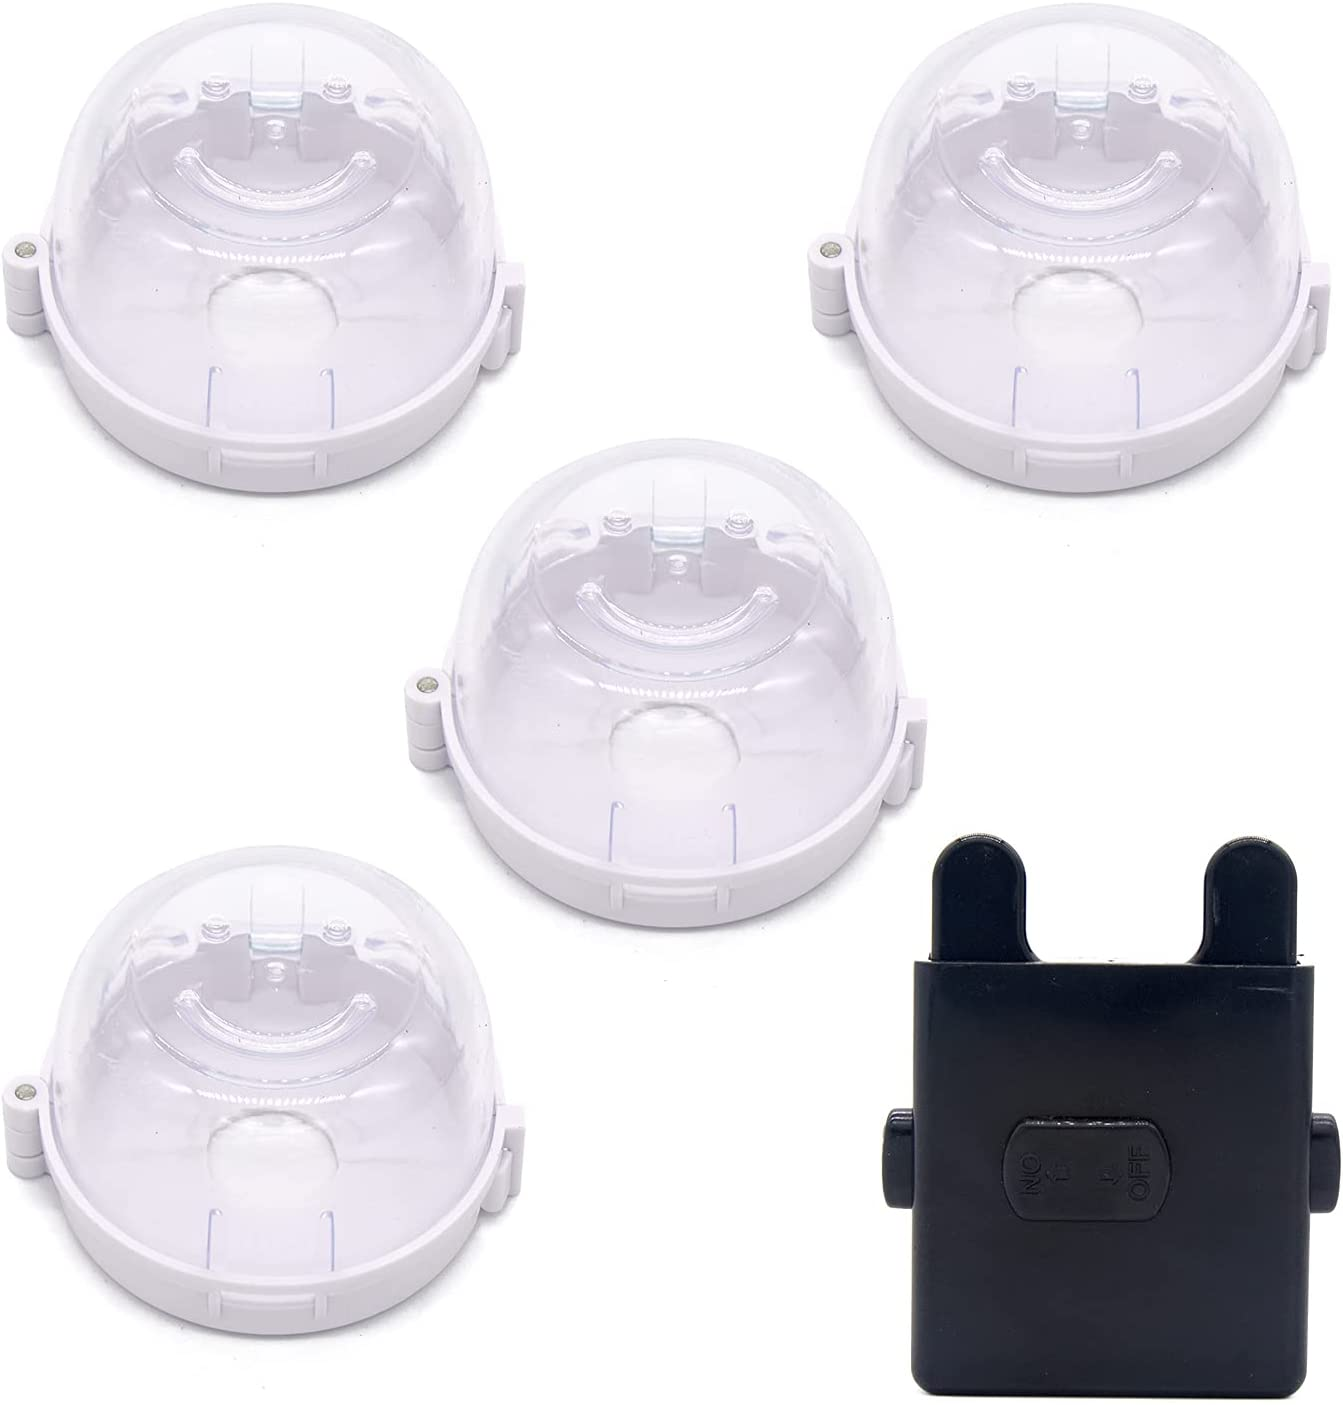 4 Pack Stove Knob Covers, Universal Kitchen Stove Knob Cover Comes with 1 Oven Lock, Gas Stove Knob Protection Locks for Child Baby Kids Safety